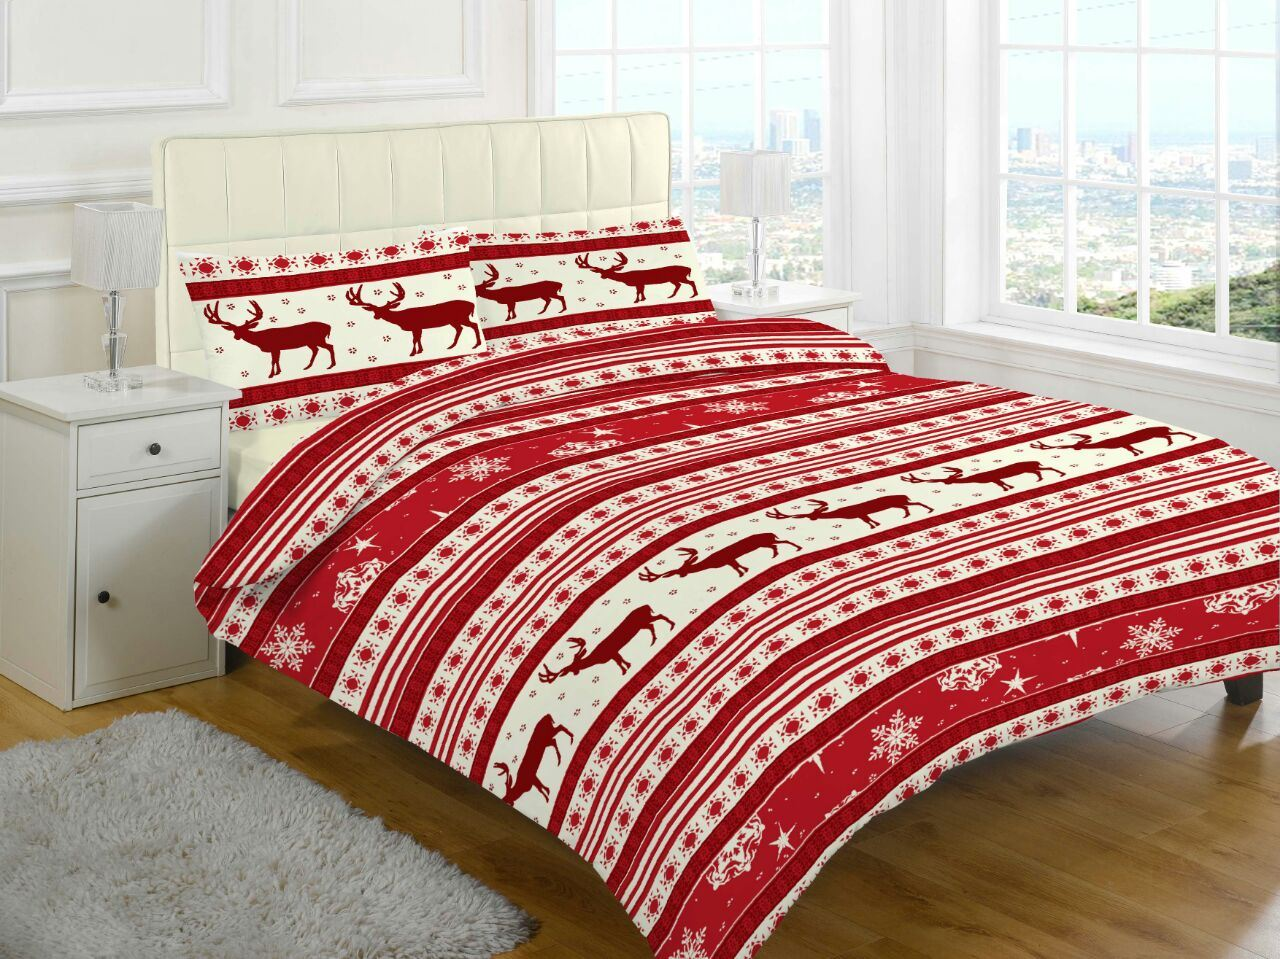 XMAS-DUVET-COVER-WITH-PILLOW-CASE-NOVELTY-REINDEER-